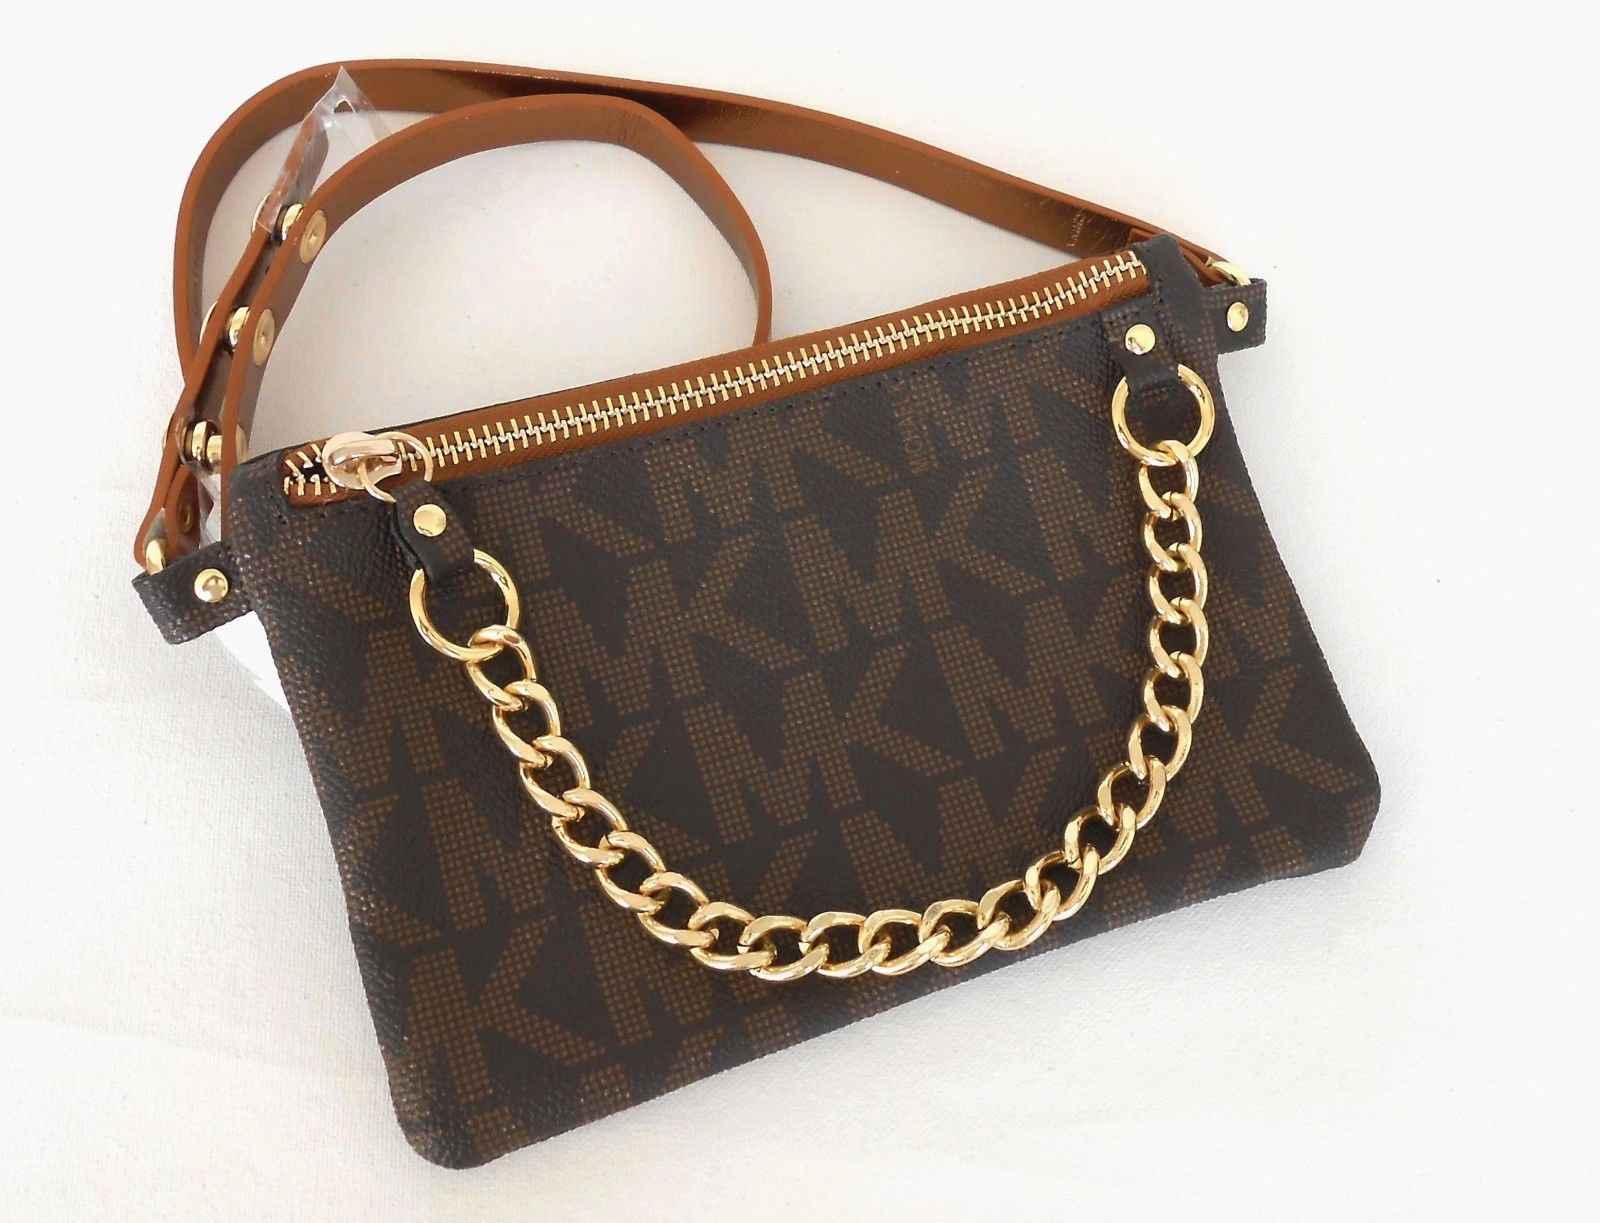 a7aca79a193db SOLD OUT! Michael Kors Chocolate Mk Logo Leather Fanny Pack   Belt Bag